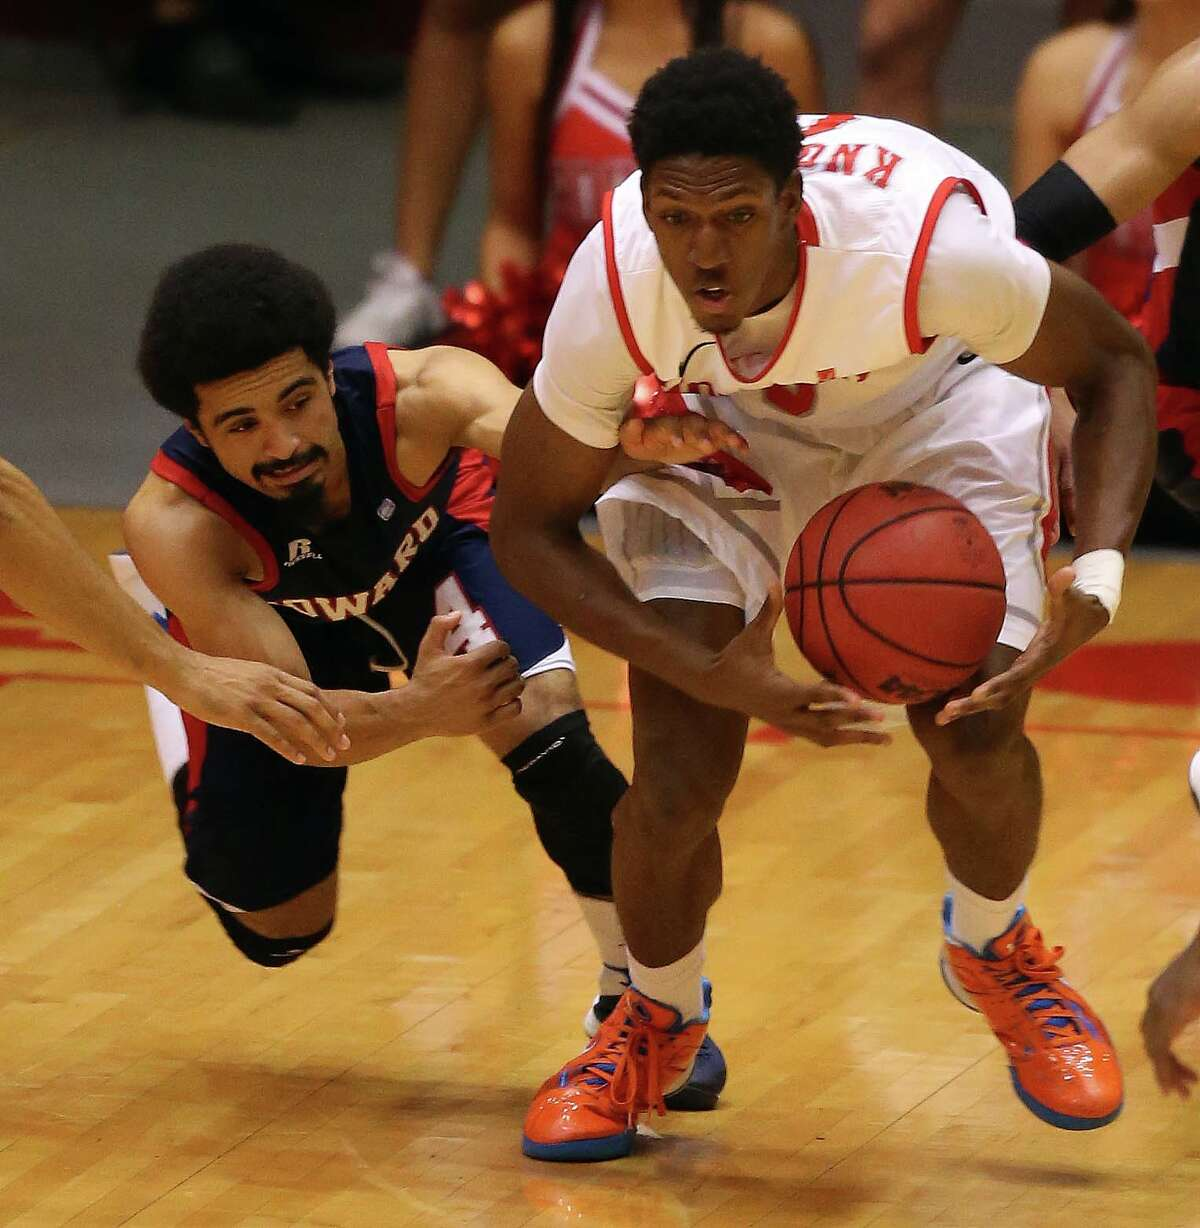 Houston's Danrad Knowles, right, fights for a loose ball against Howard's Ausar Madison during the second half of an NCAA college basketball game, Thursday, November 21, 2013, at Hofheinz Pavilion in Houston.